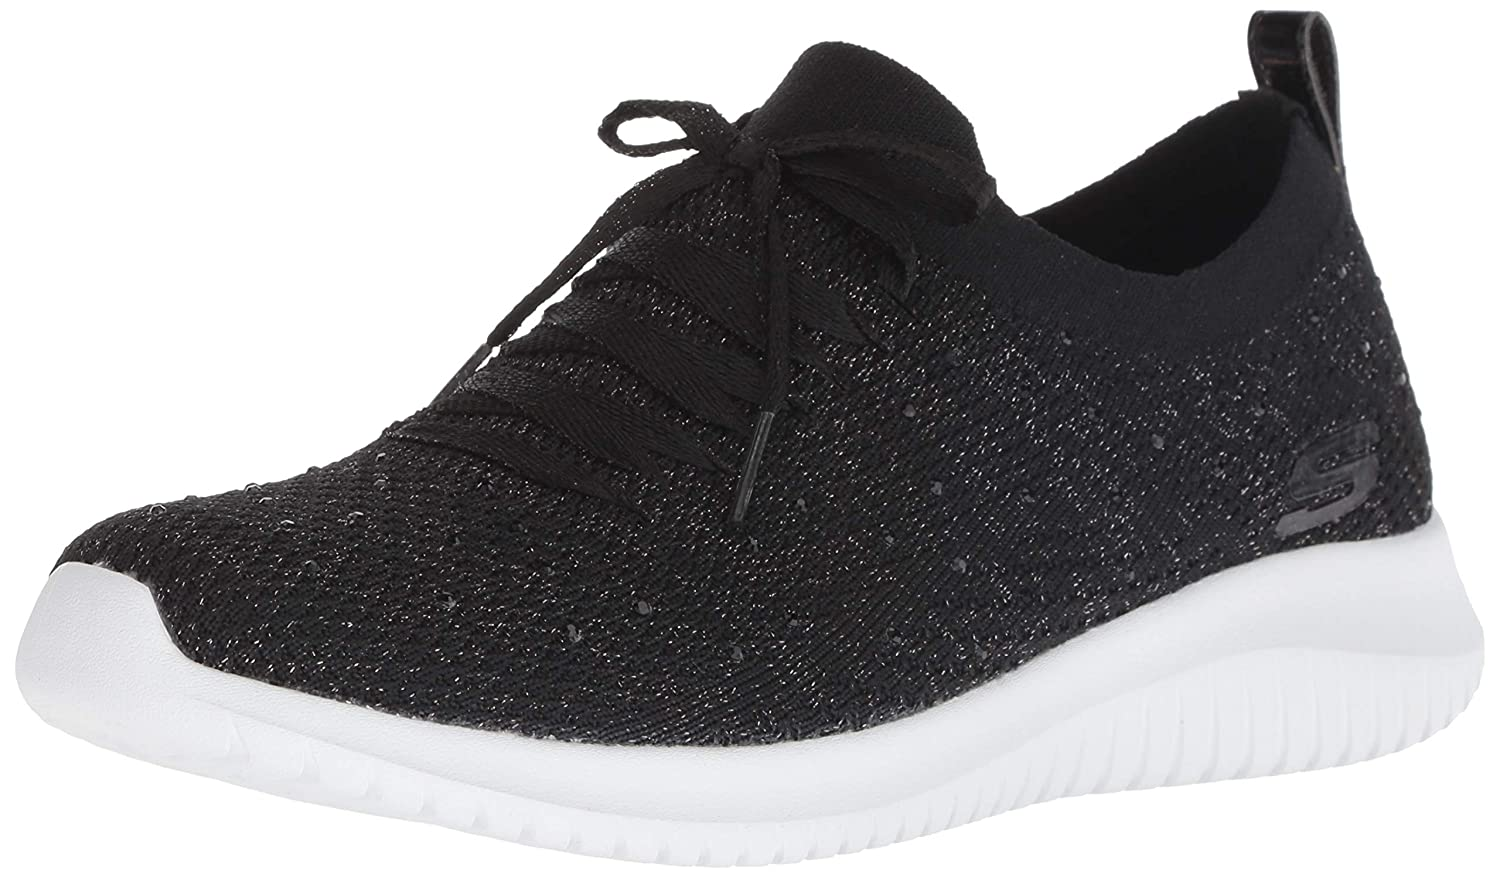 Black Skechers Women's Ultra Flex Sneaker